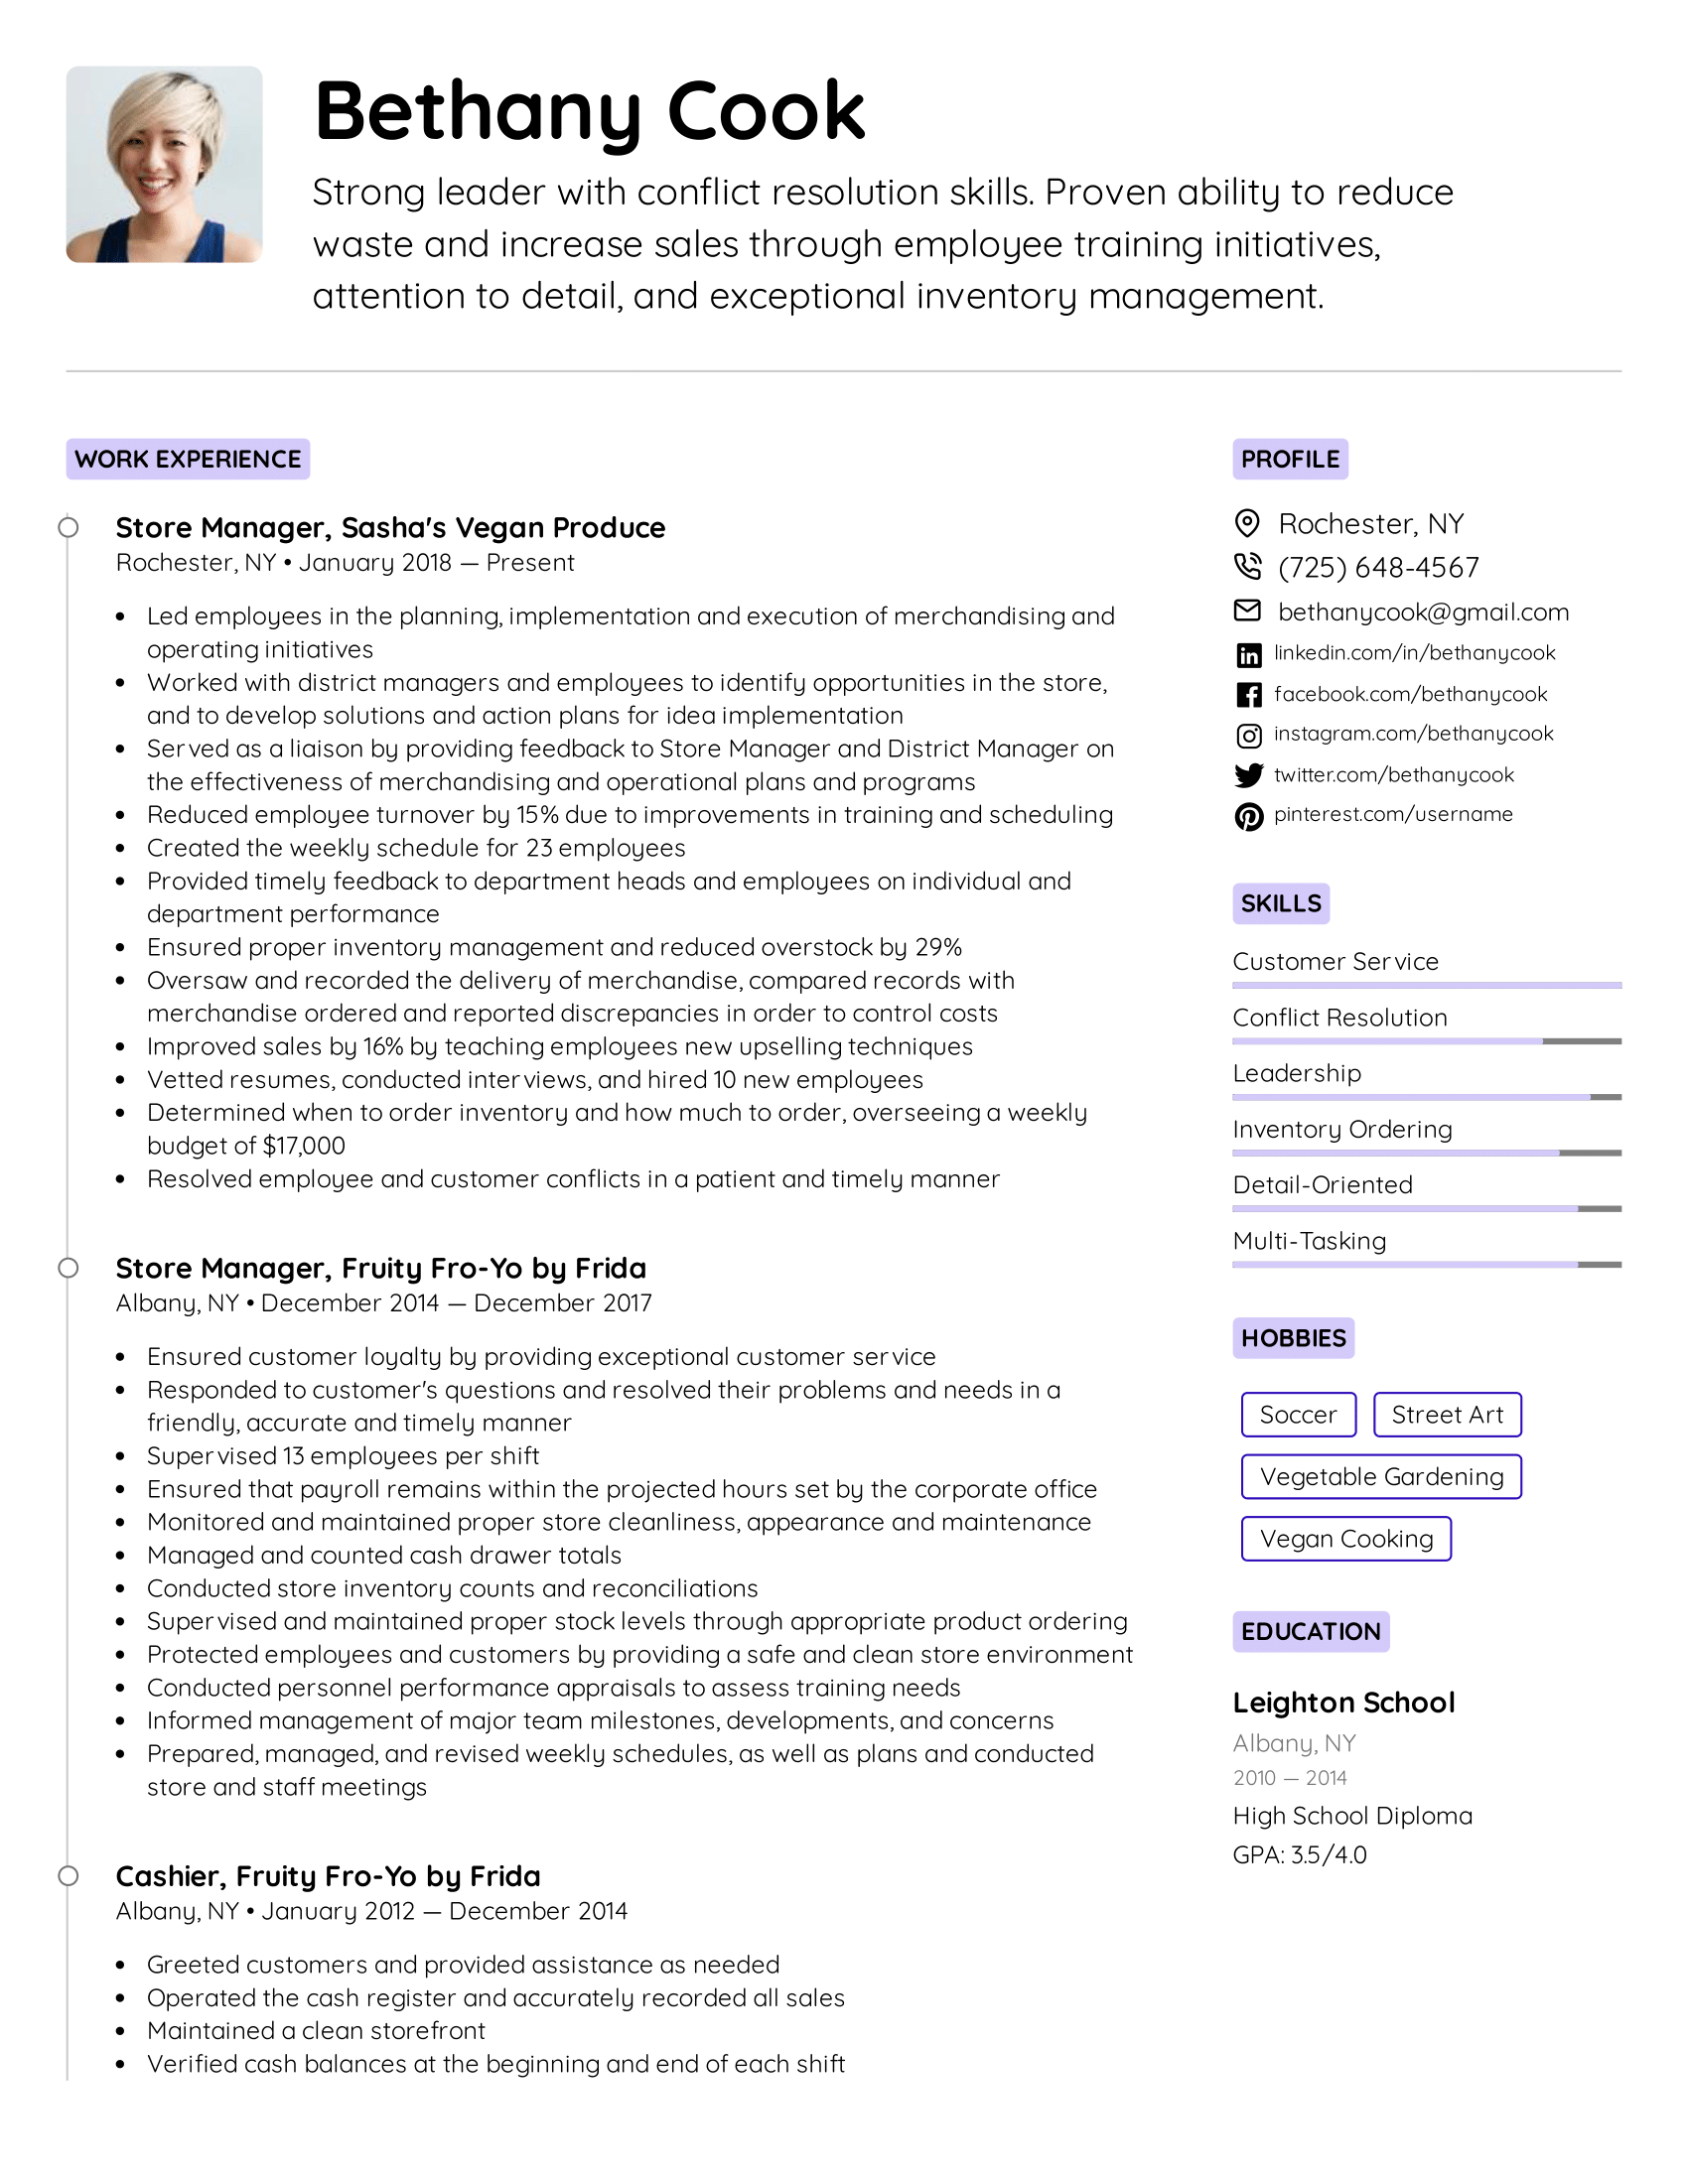 A simple resume template format